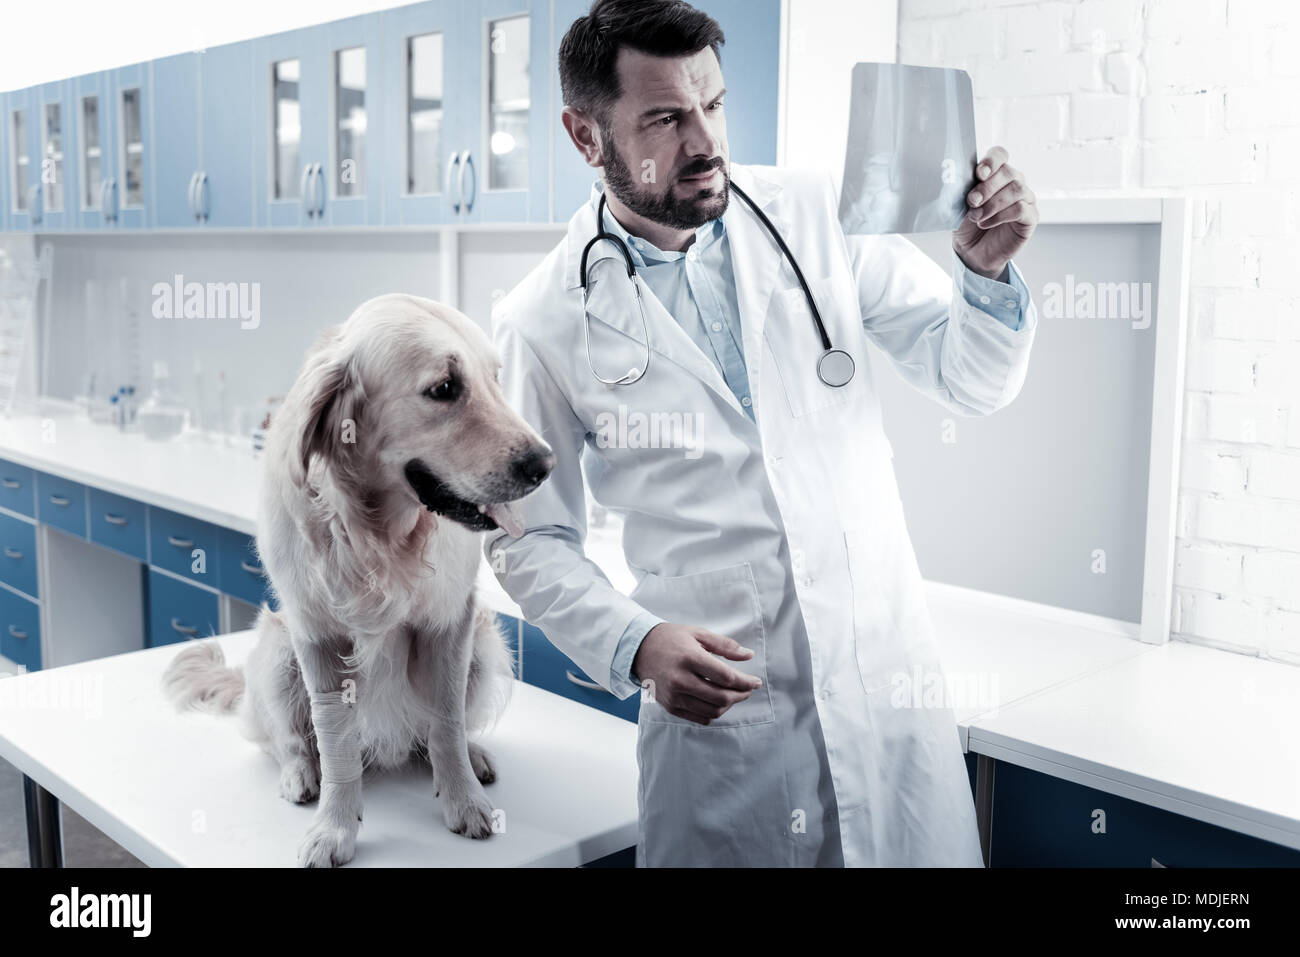 Serious smart doctor looking at the X ray image - Stock Image